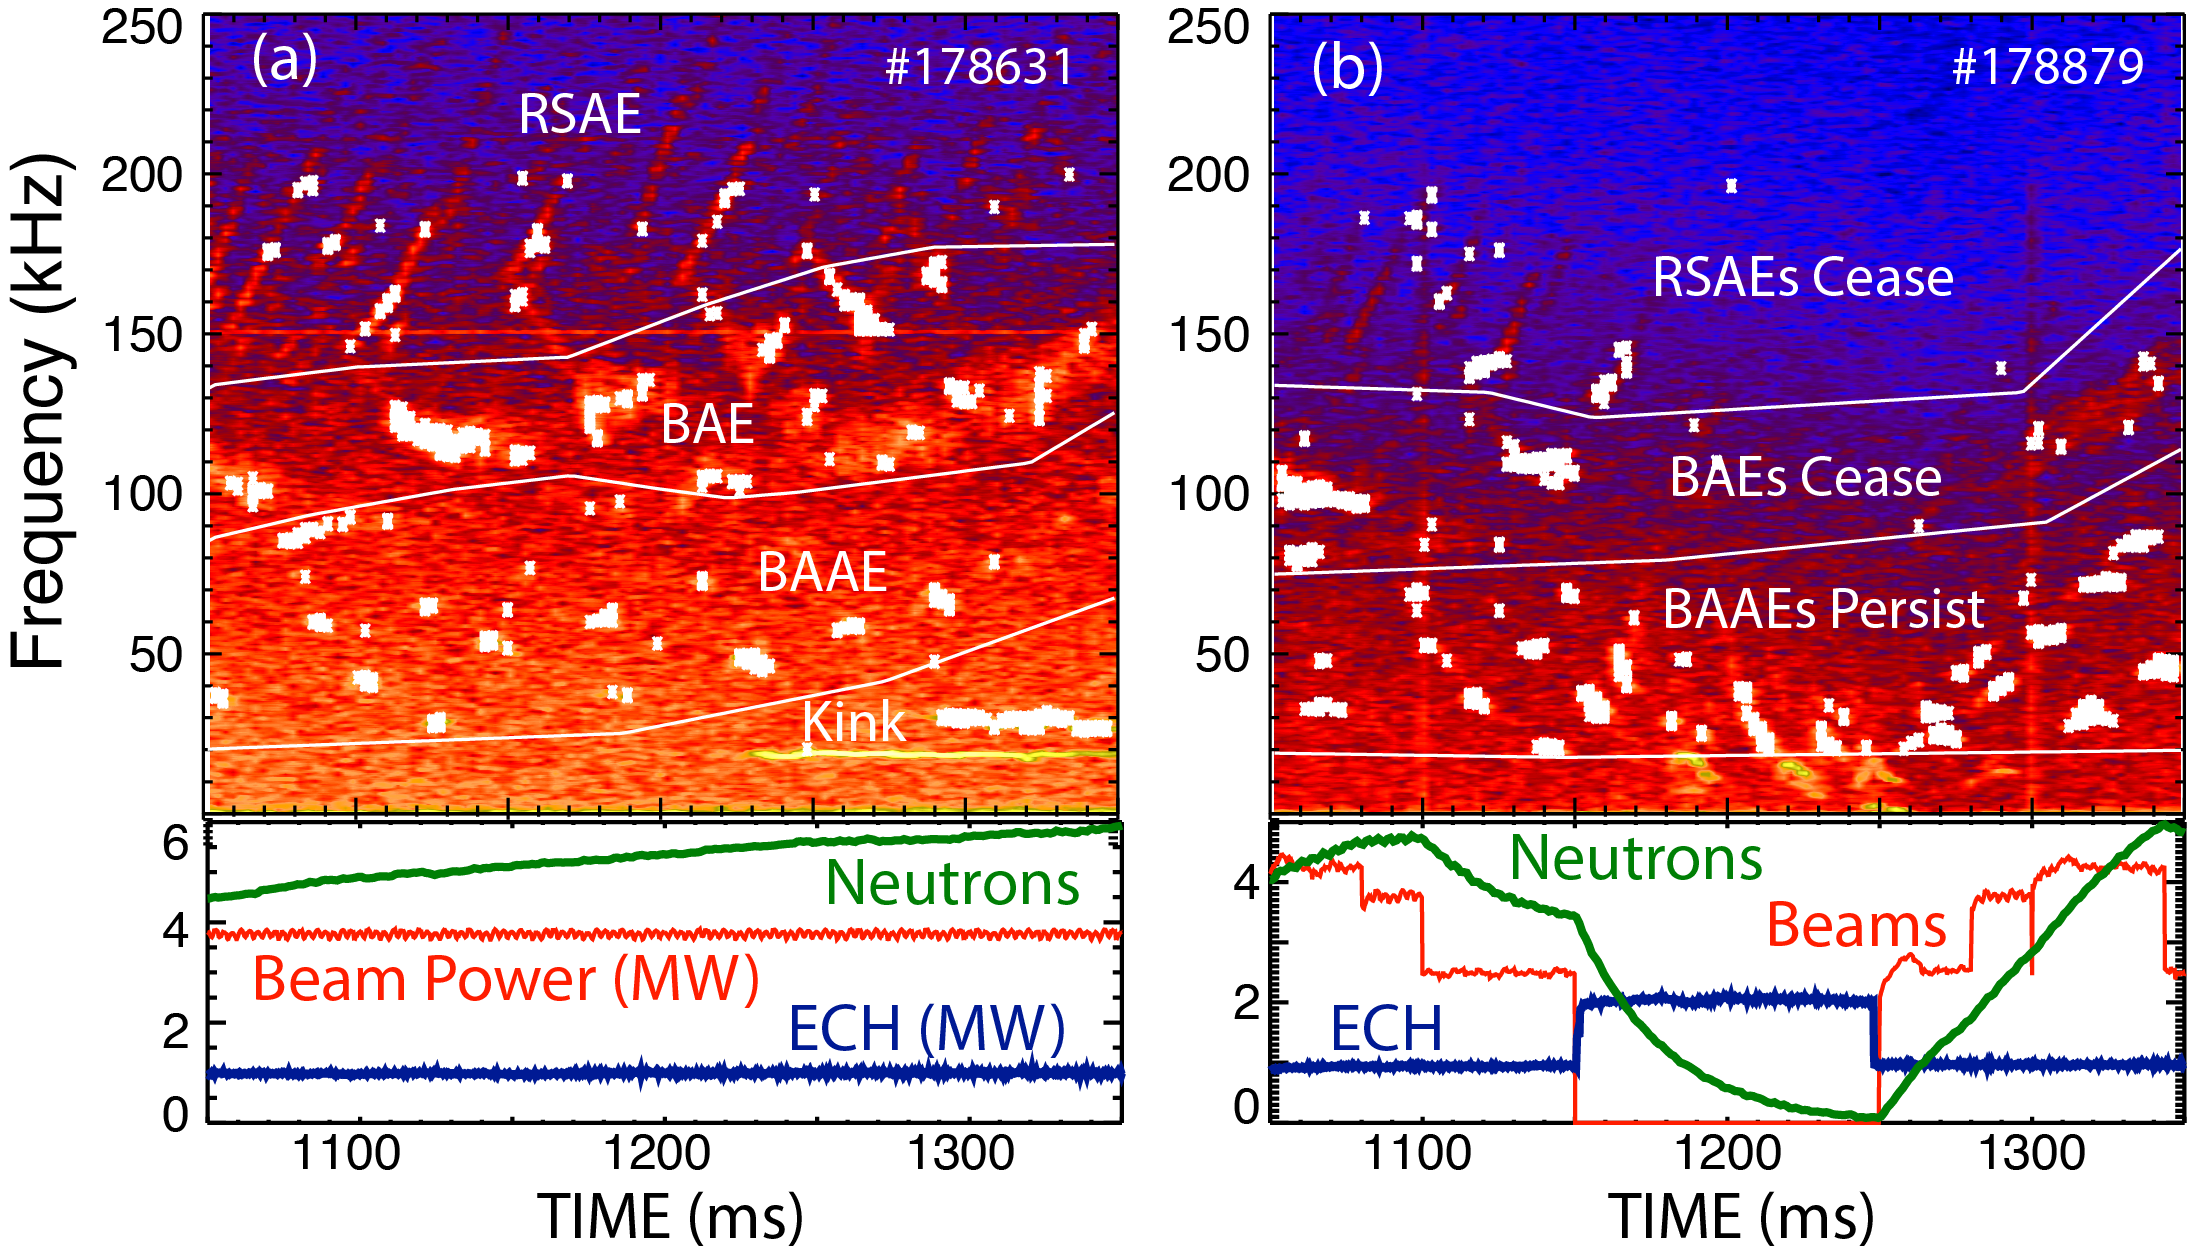 (a) Reference shot with persistent RSAE, BAE, and BAAE activity during steady NBI and ECH heating. (b) When NBI is turned off, RSAE and BAE activity ceases  and the neutron rate approaches zero but BAAE activity persists. (The BAAE frequency drops because the toroidal rotation slows.) Units for the neutron signal: $10^{14}$/s.